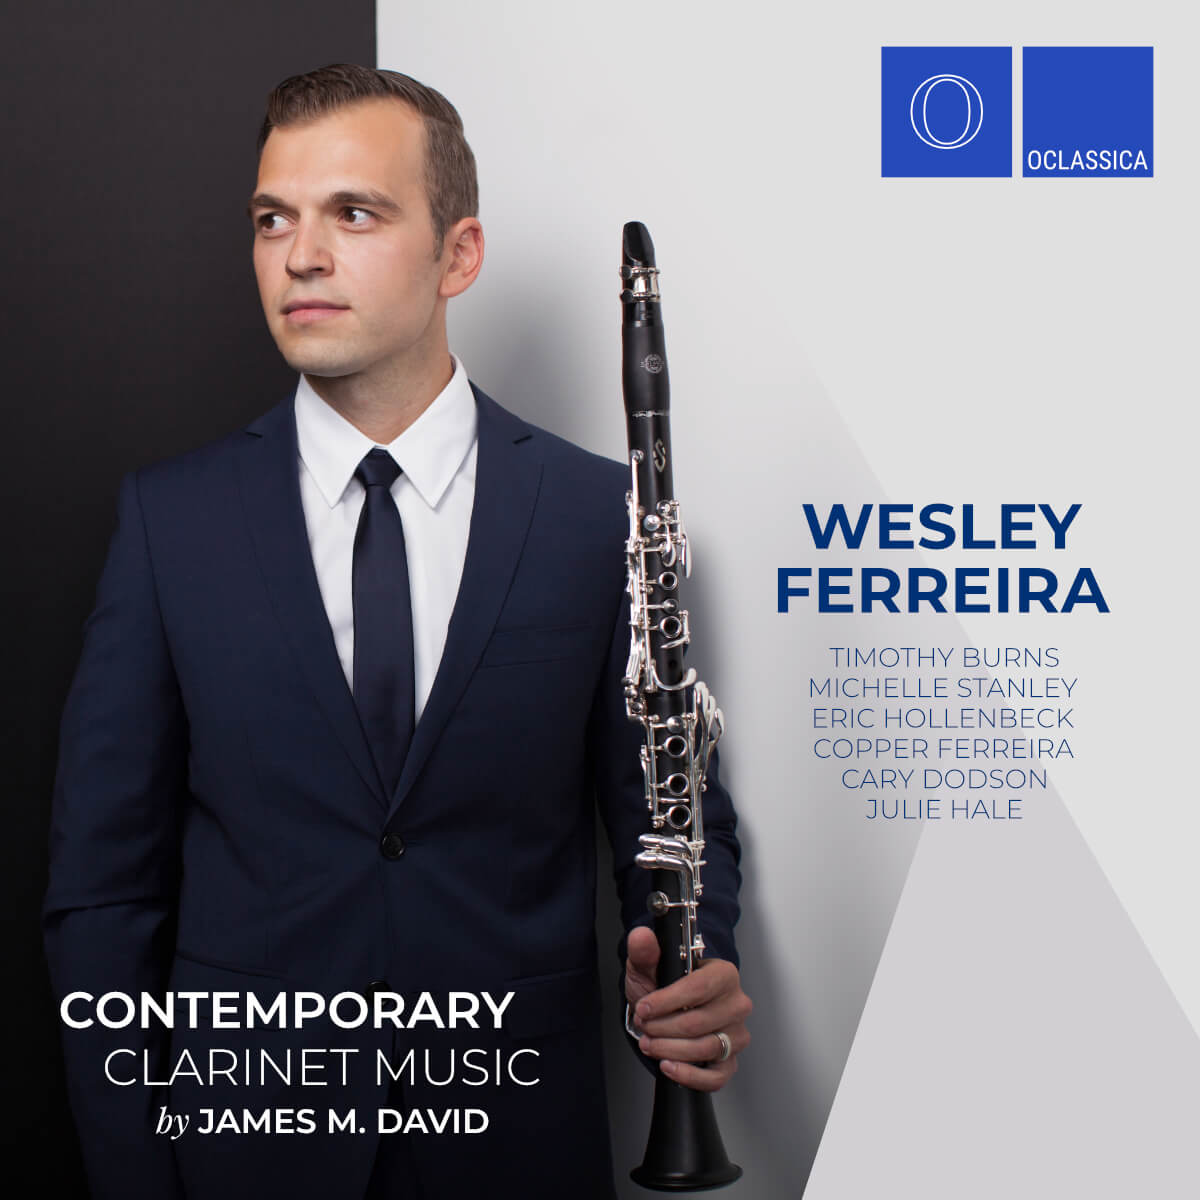 Contemporary Clarinet Music by James M. David – Wesley Ferreira